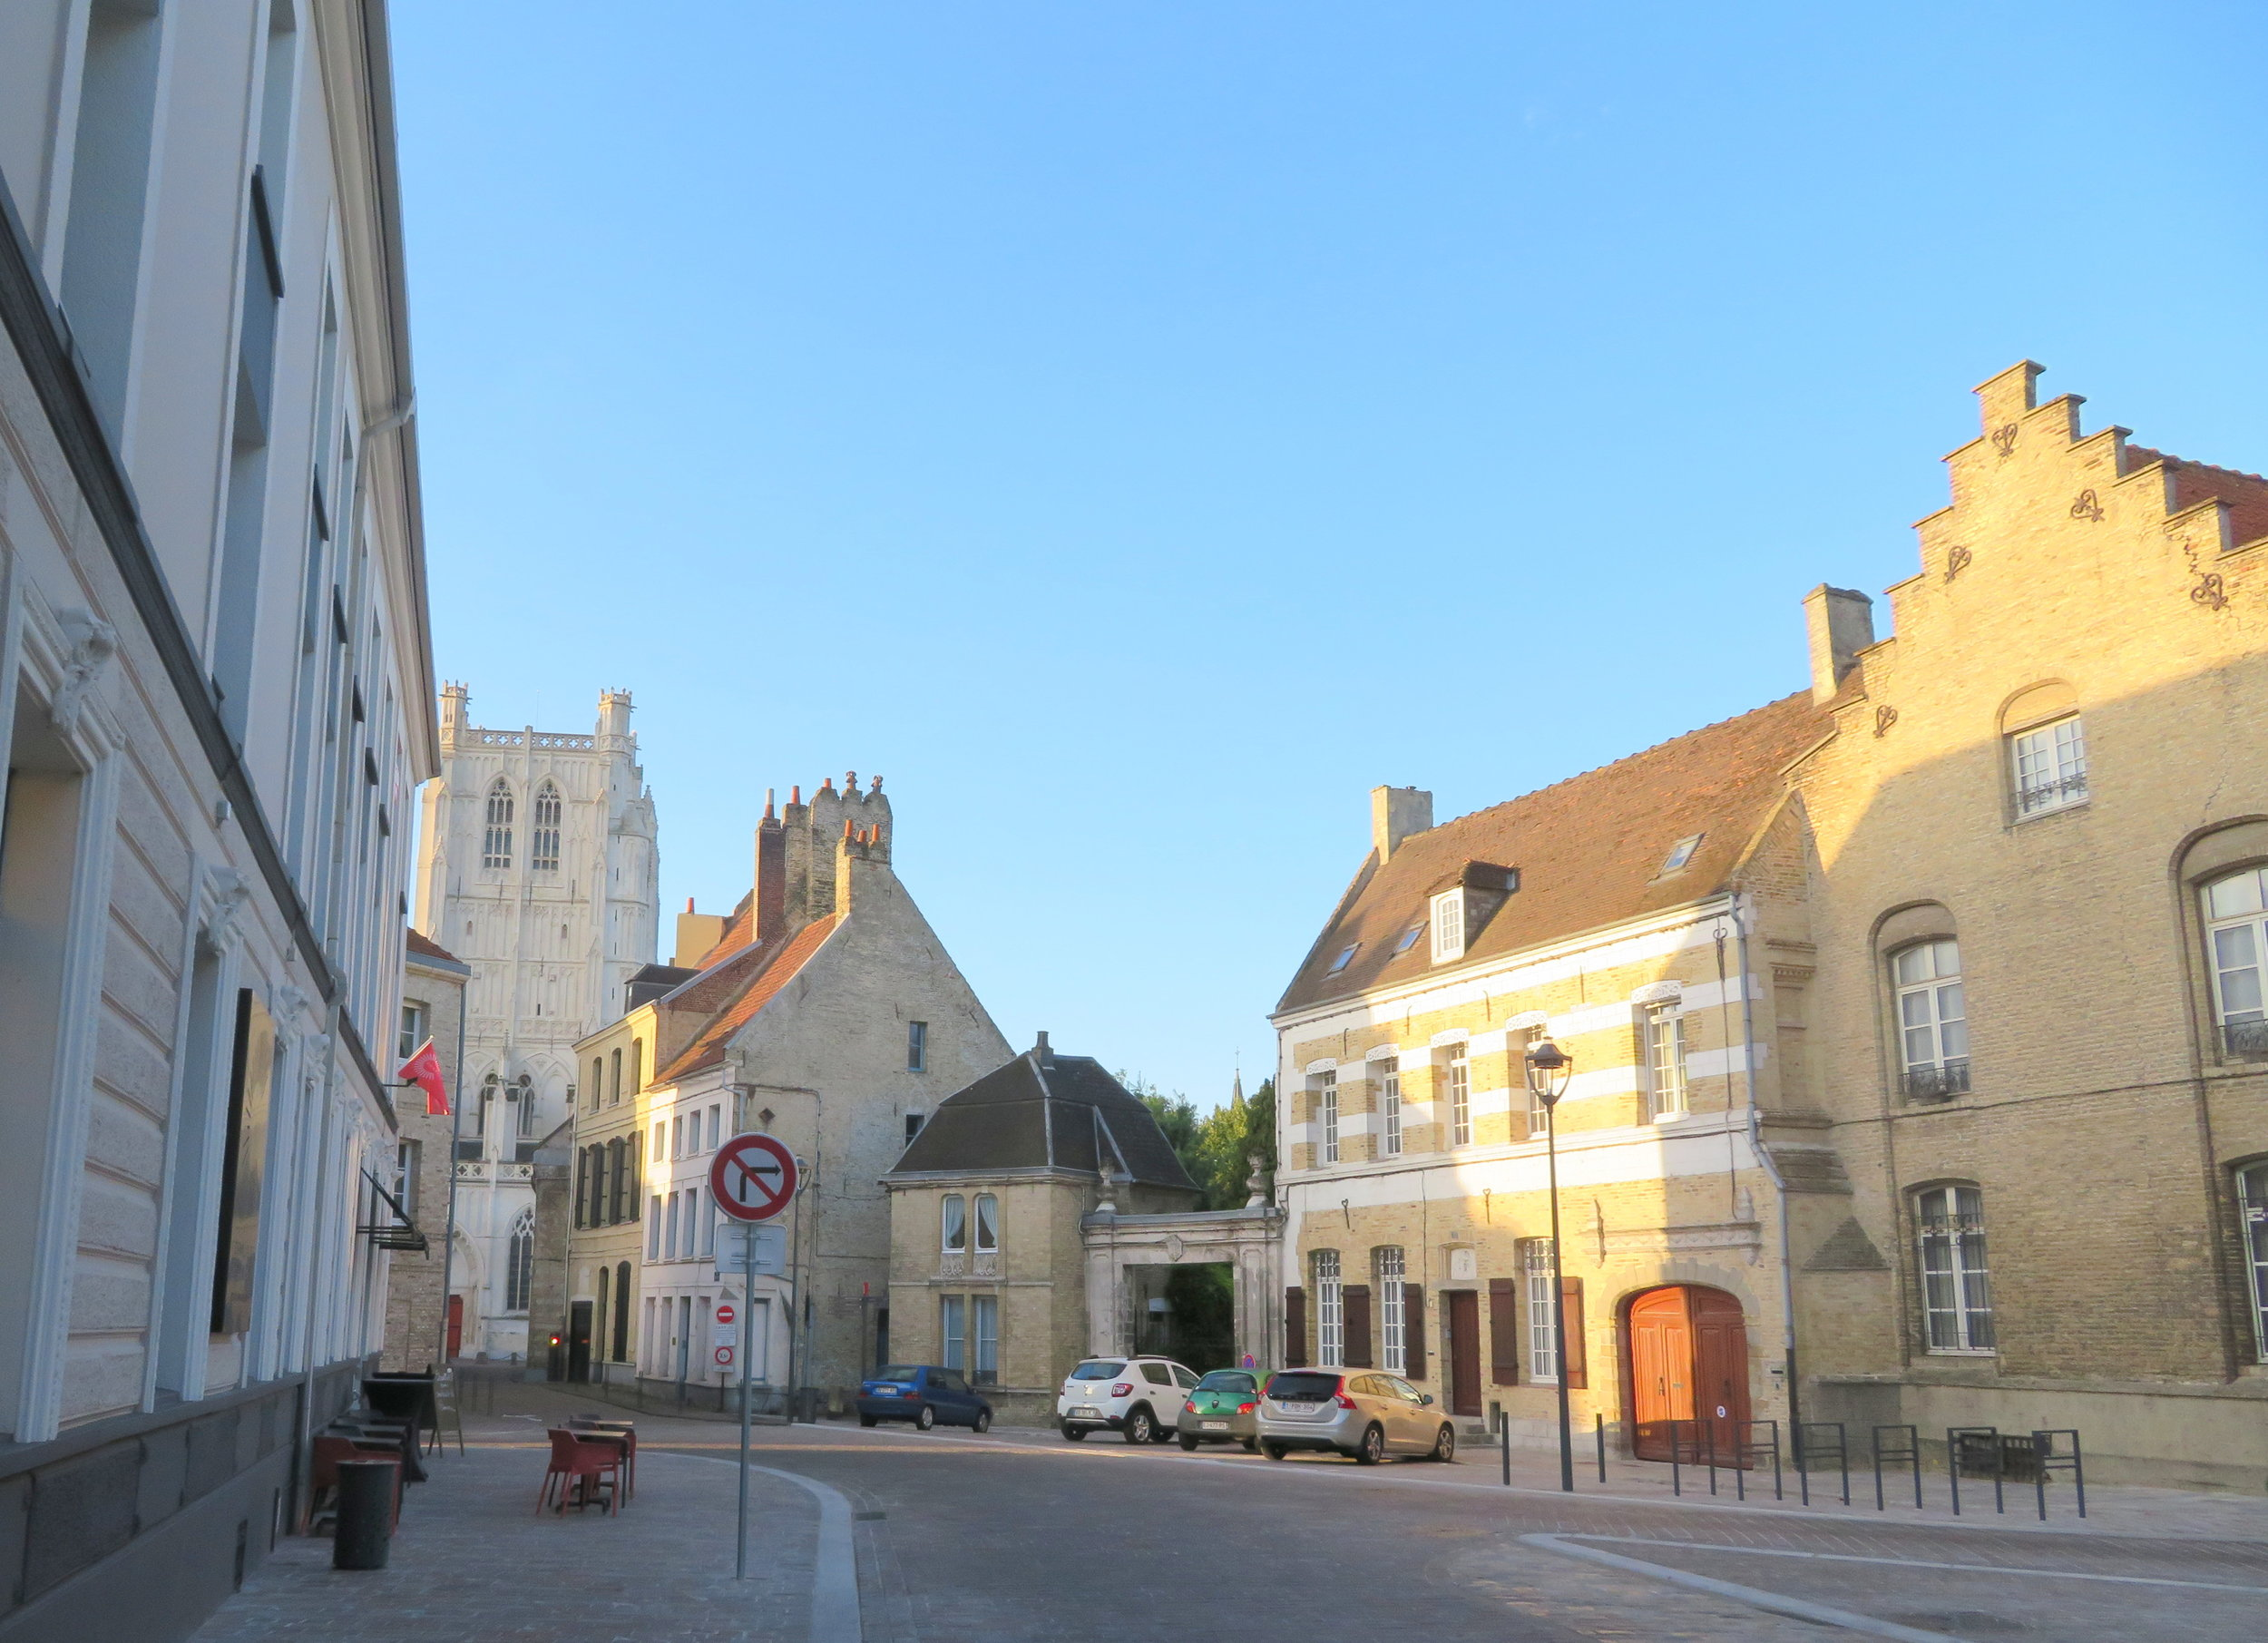 Saint Omer was quiet and peaceful when we walked through early in the morning.